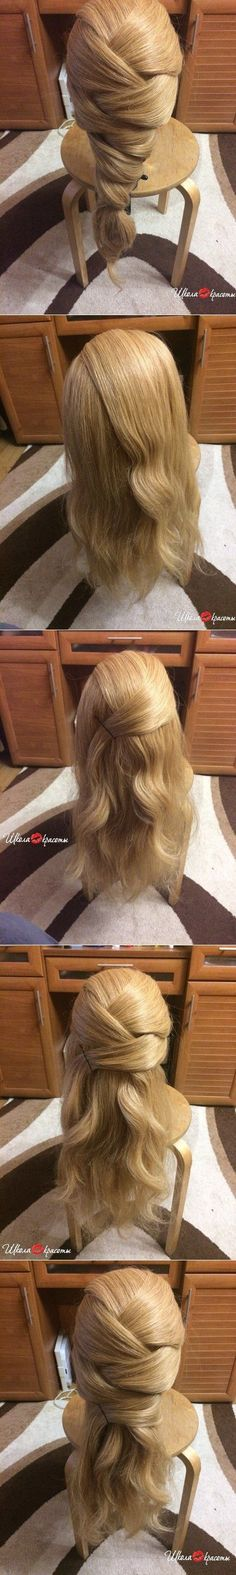 Fashion & Style… ♥ Deniz ♥ - New Hair Hair Day, New Hair, Girl Hairstyles, Braided Hairstyles, Pretty Hairstyles, Frozen Hairstyles, Fashion Hairstyles, Wedding Hairstyles, Hair Designs